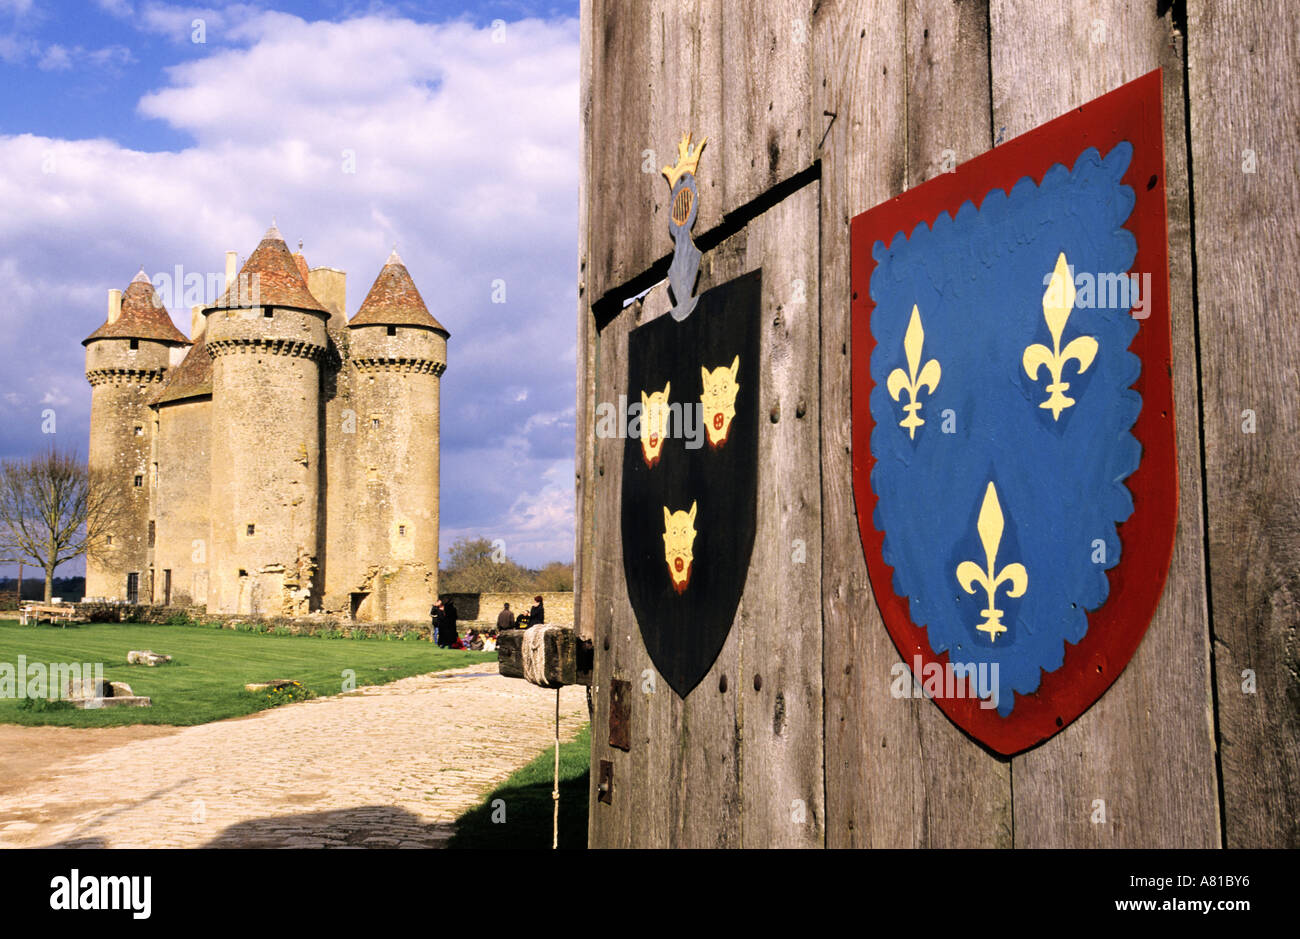 France, Indre, Berry of George Sand, Sarzay, feudal castle (XIVth century) - Stock Image